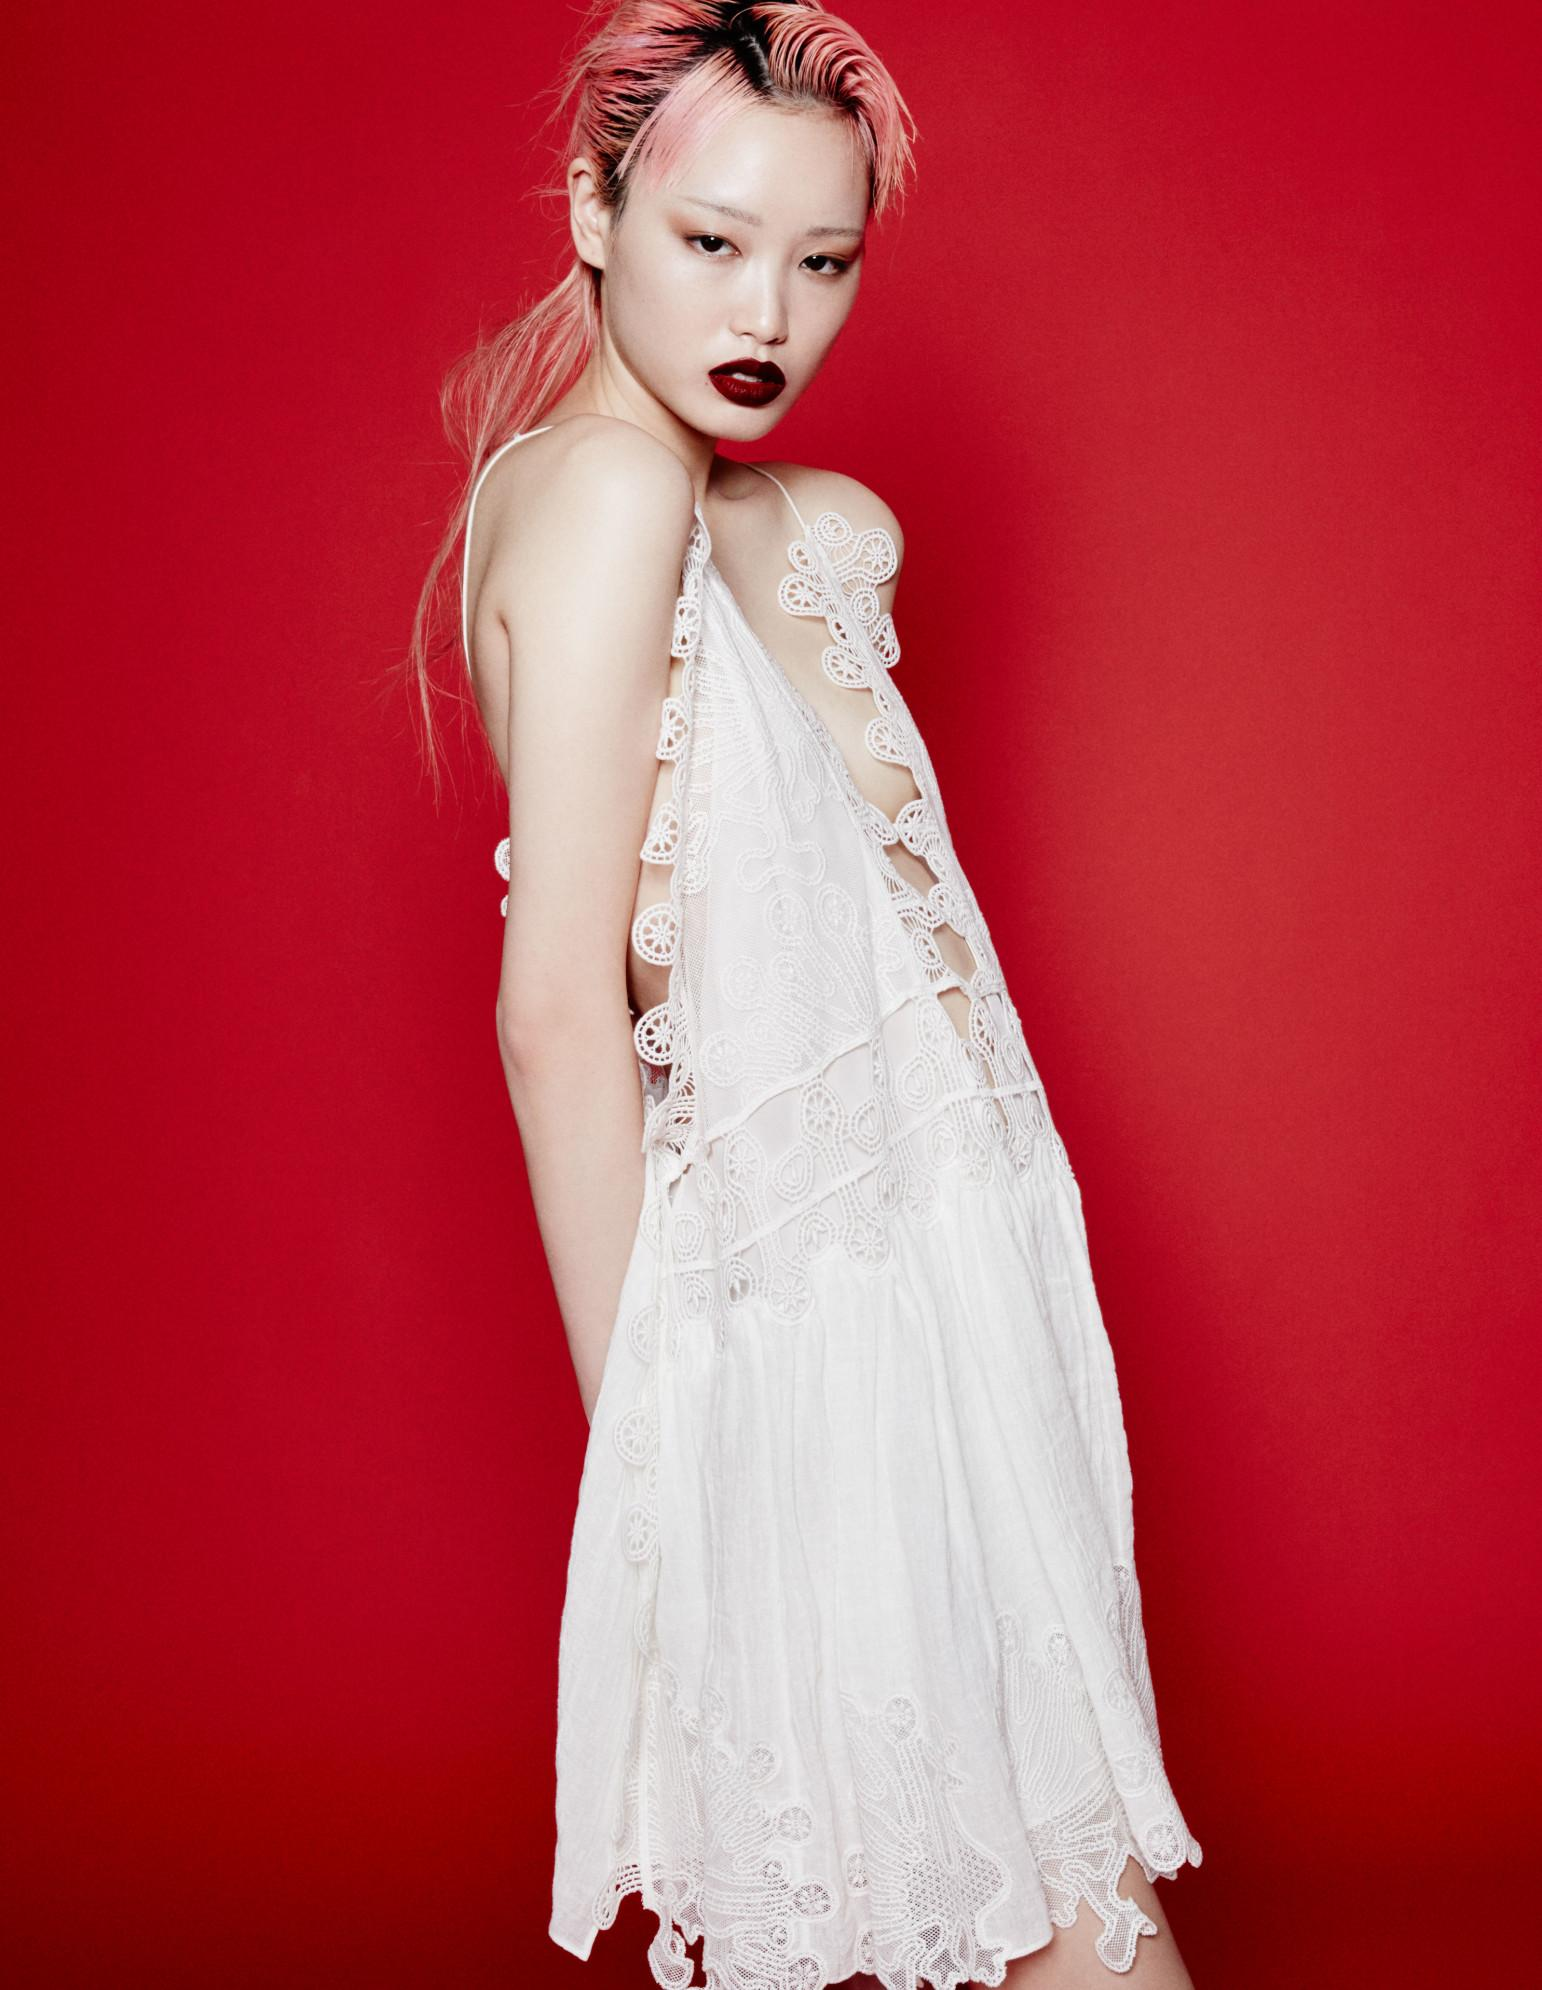 How to wear white dresses, starring #FernandaLy: http://t.co/ZIC4XAdqCg http://t.co/c3ZMeOb3QI